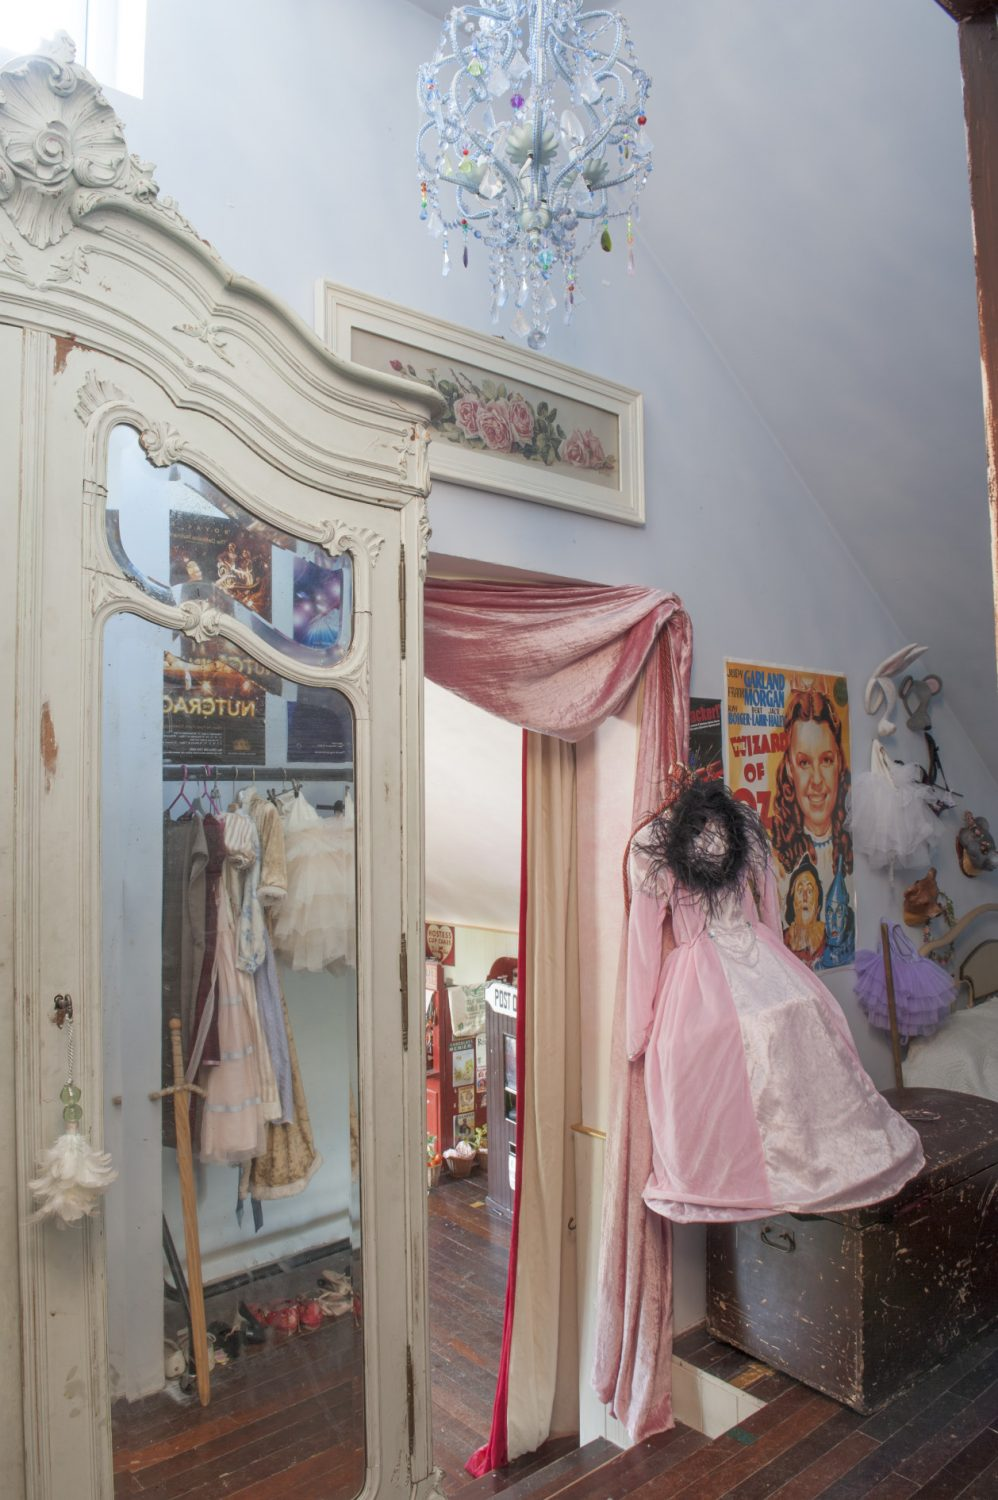 The children's playroom and ballet studio is accessed through a small anteroom.